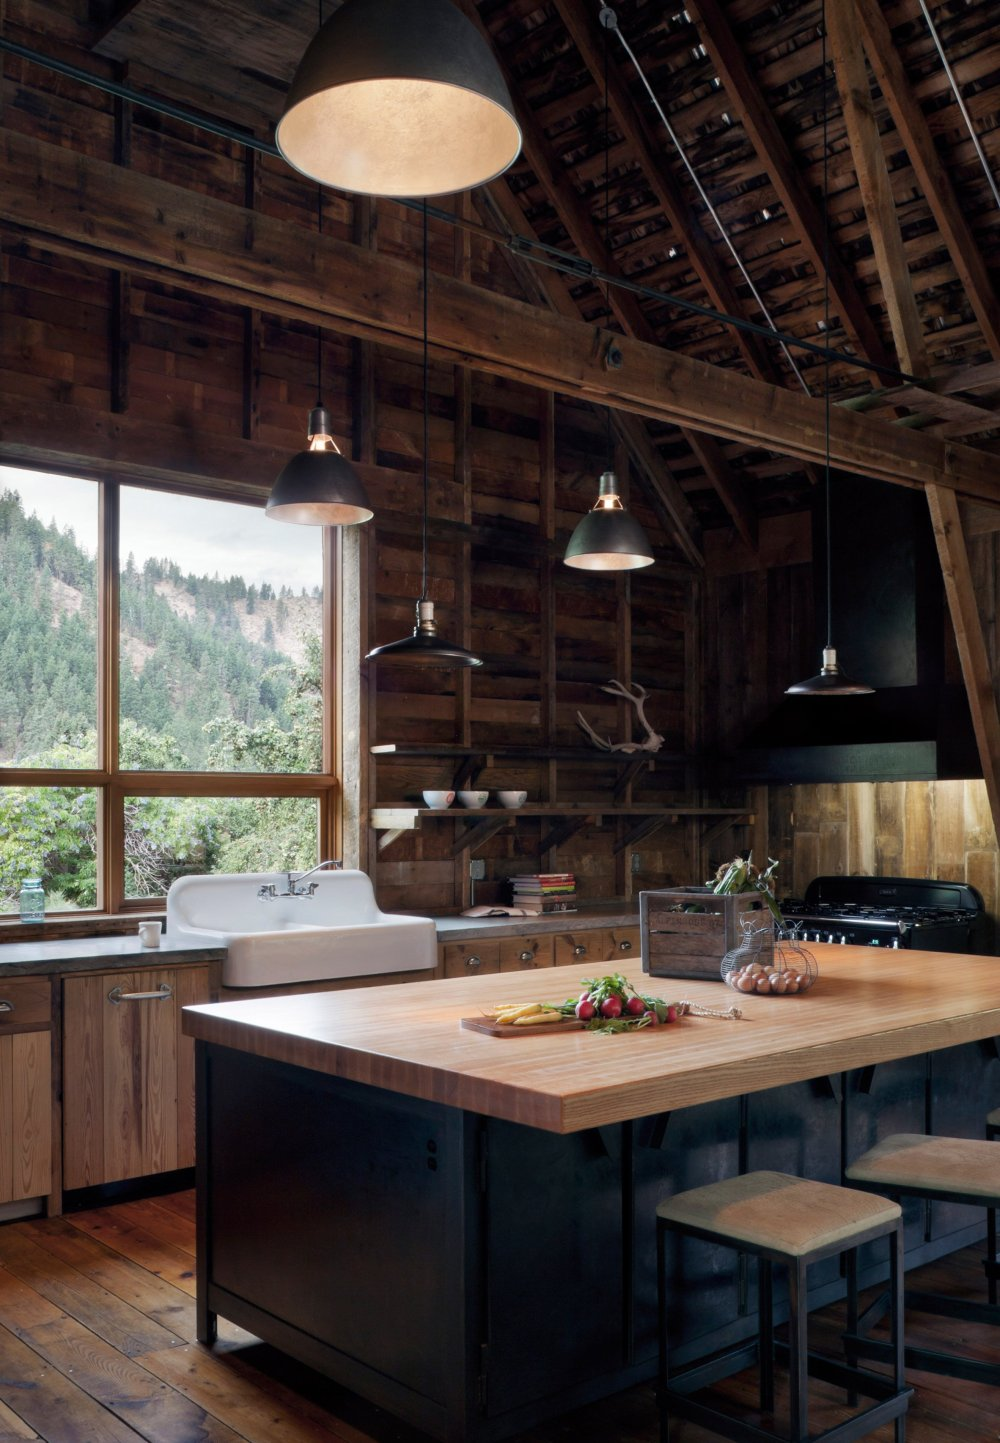 canyon-barn-mw-works-architecture-east-cascades-usa_dezeen_2364_col_0.jpg